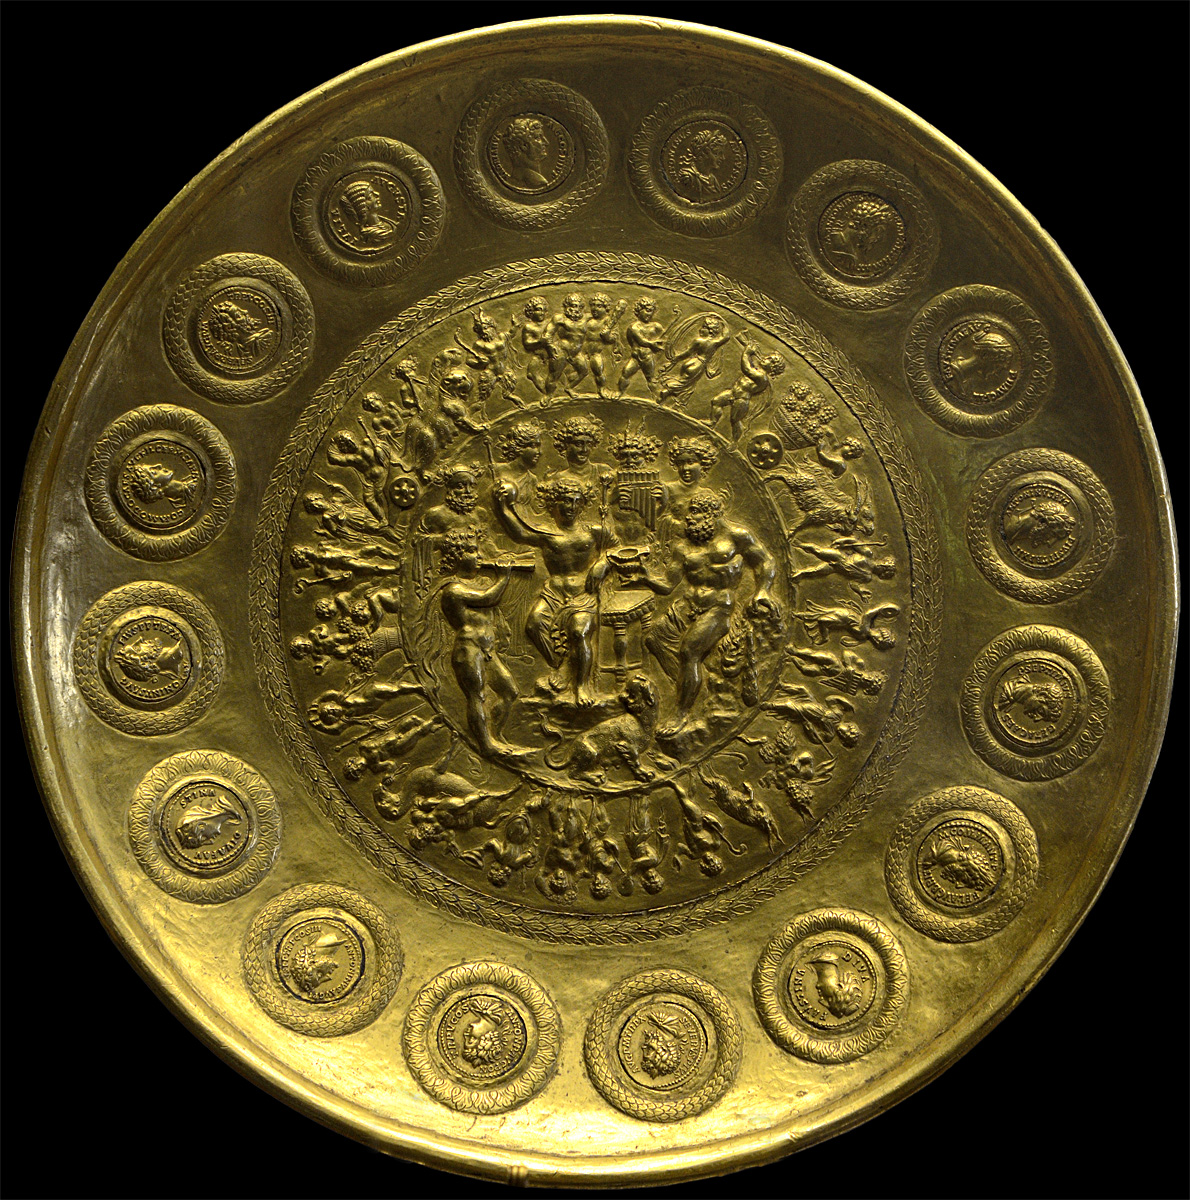 Patera of Rennes. Gold. Early 3rd century CE. Diameter 25 cm, weight 1375 g. Inv. No. 56.94. Paris, National Library, Cabinet des Médailles